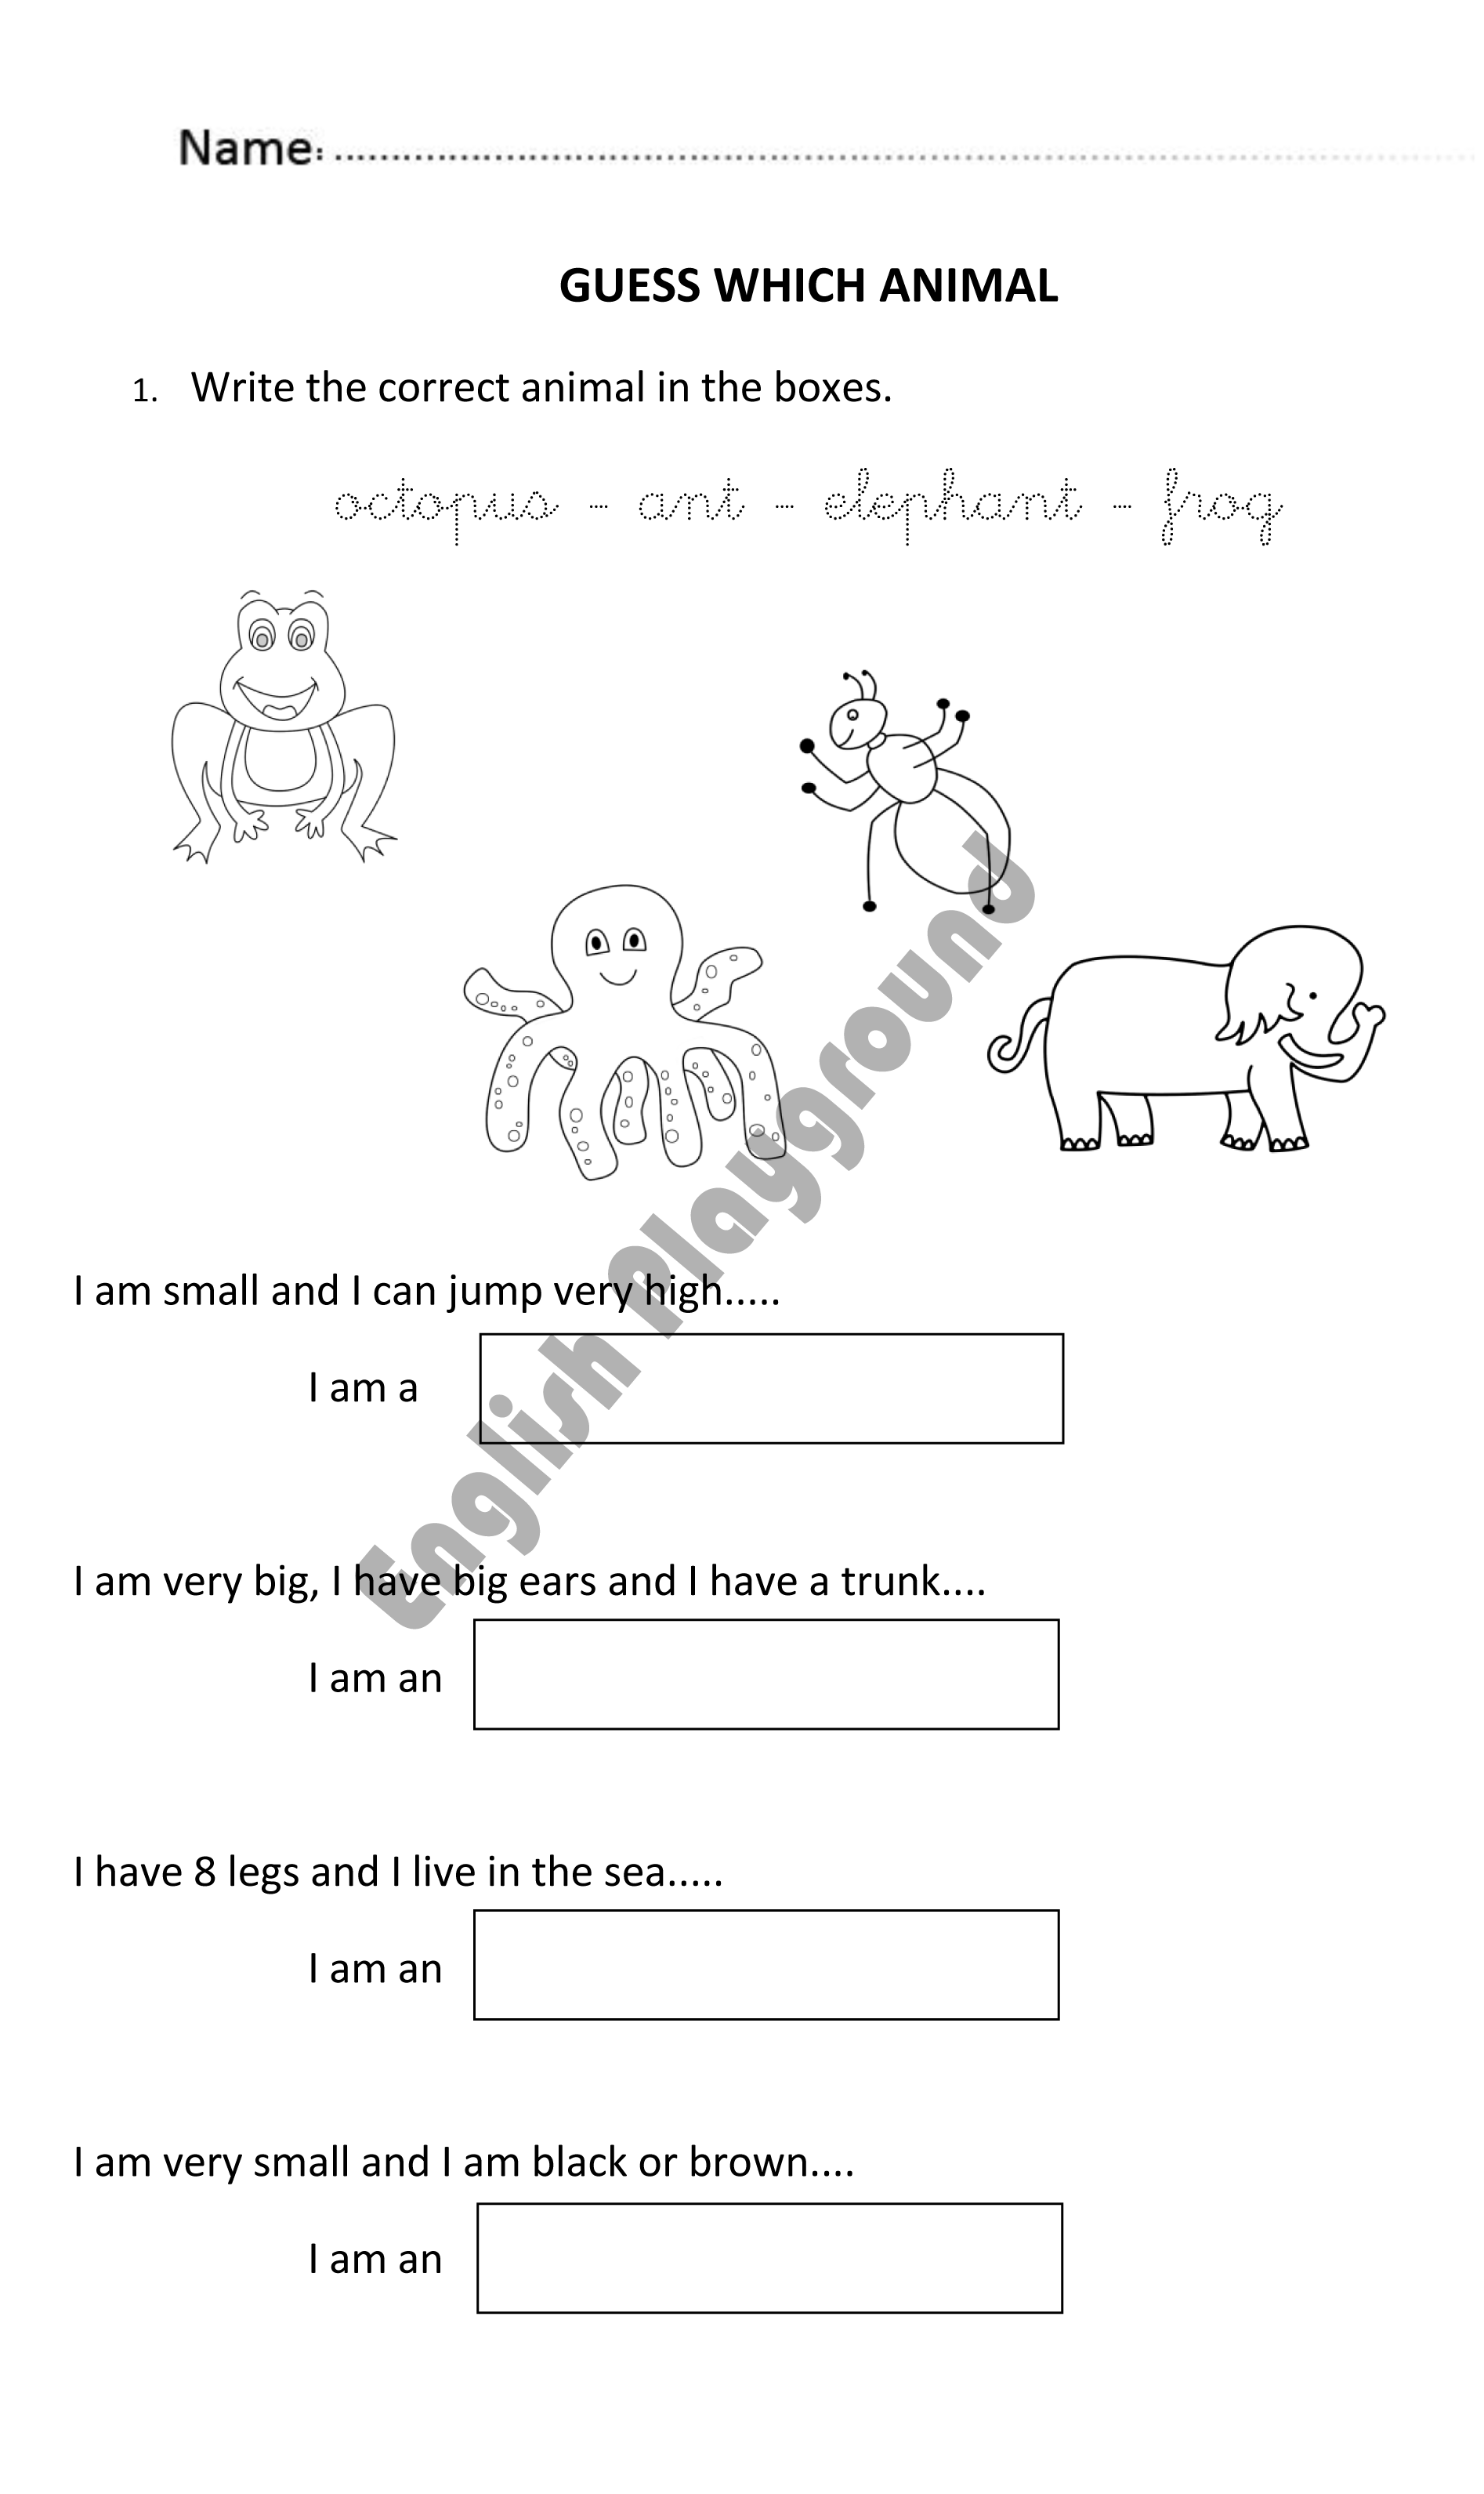 Fun worksheet to guess animals for 5 and 6 years olds. #AnimalWorksheet    Activities for 6 year olds [ 3182 x 1894 Pixel ]